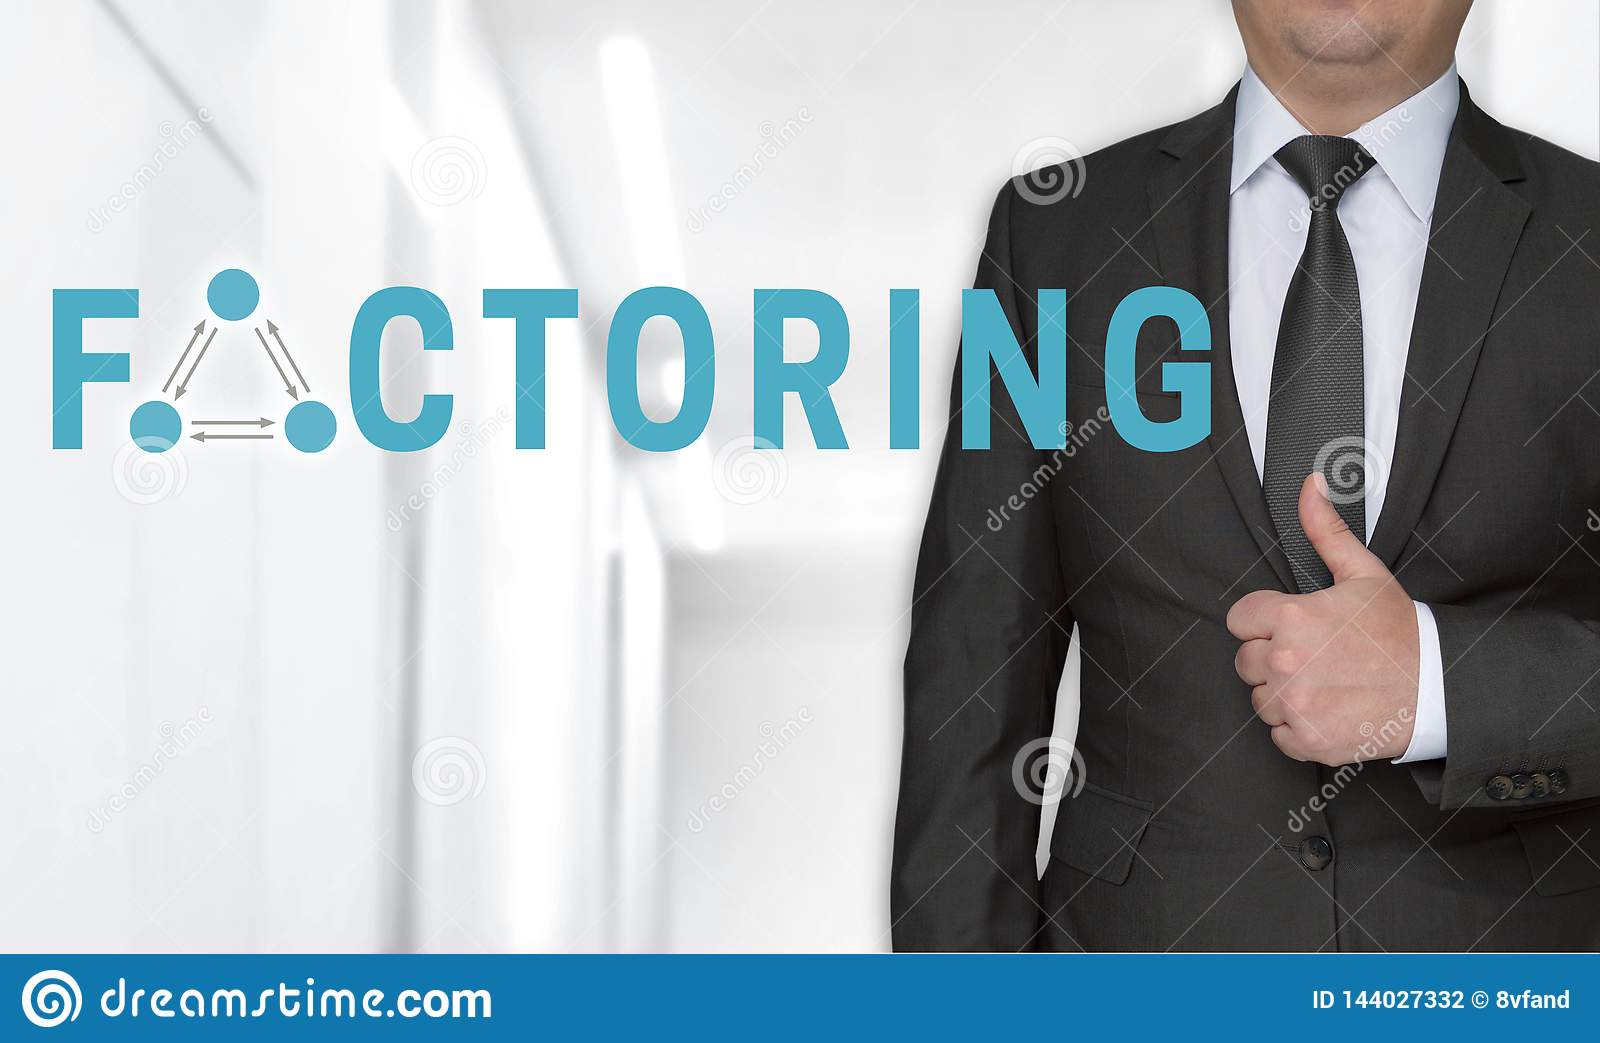 Factoring concept and businessman with thumbs up